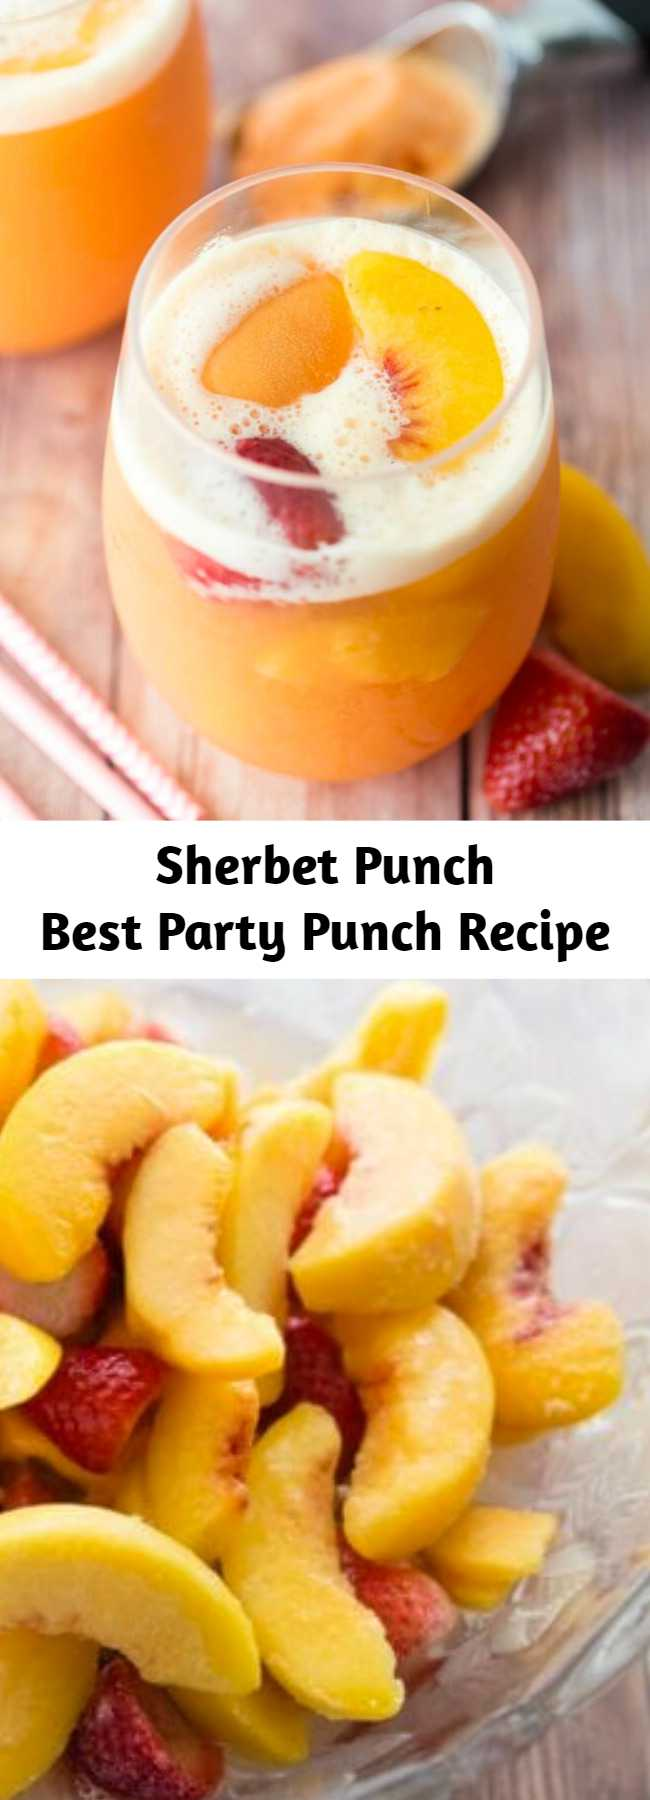 Sherbet punch made with ginger ale, white grape juice, peaches, and strawberries is the best punch recipe ever! Perfect party punch for your next baby shower, wedding shower, summer party, or random Tuesday afternoon!